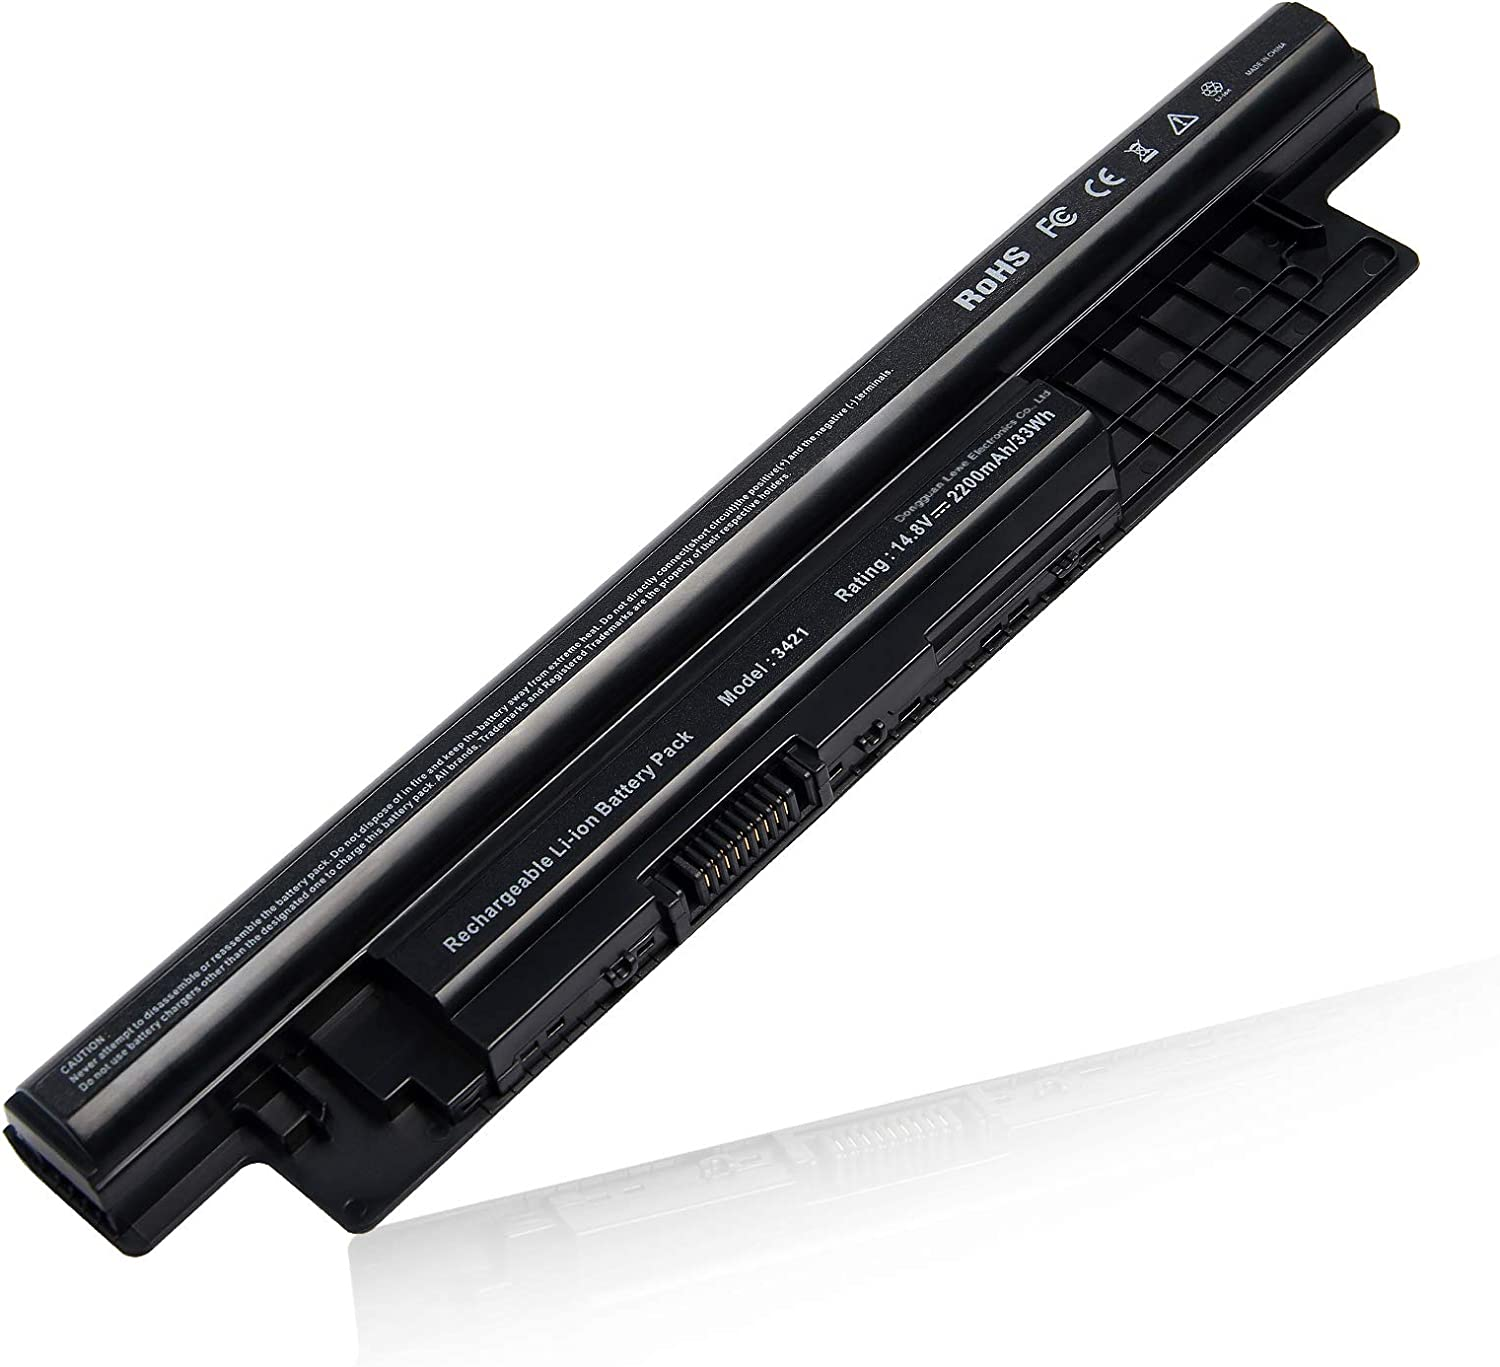 Laptop Battery for Dell Inspiron 14-3421, 14R-5421, 14R-5437, 15-3521, 15R-5521, 15R-5537, 17-3721, 17-3737, 17R-5721, 17R-5737, MR90Y 0MF69 N121Y G35K4 MK1R0 YGMTN